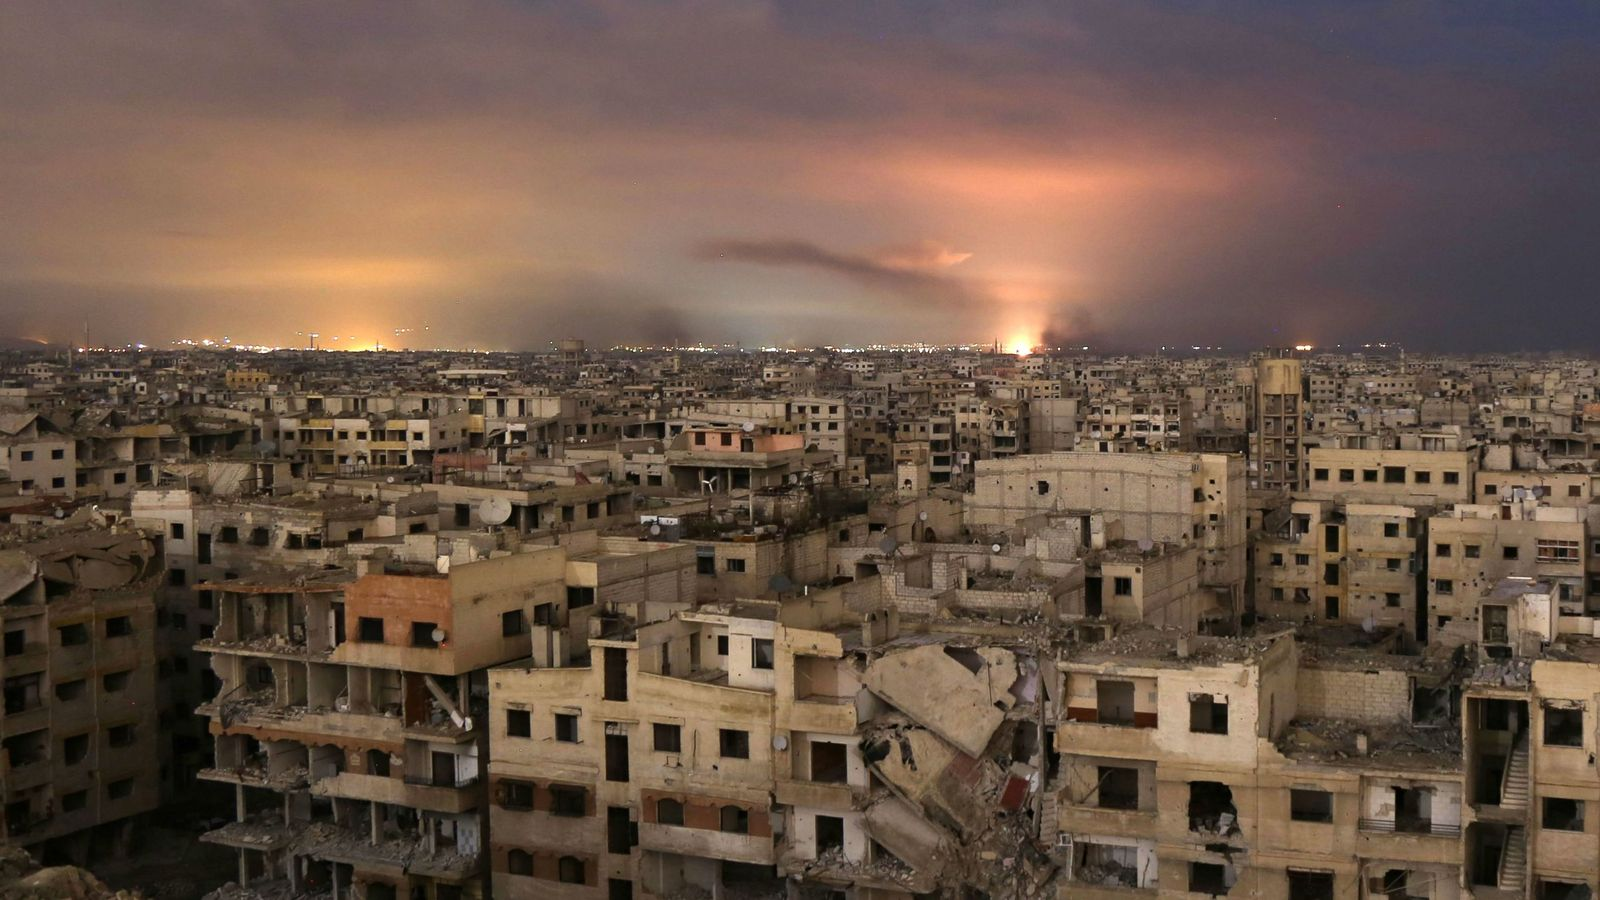 UN backs ceasefire 'without delay' in Syria